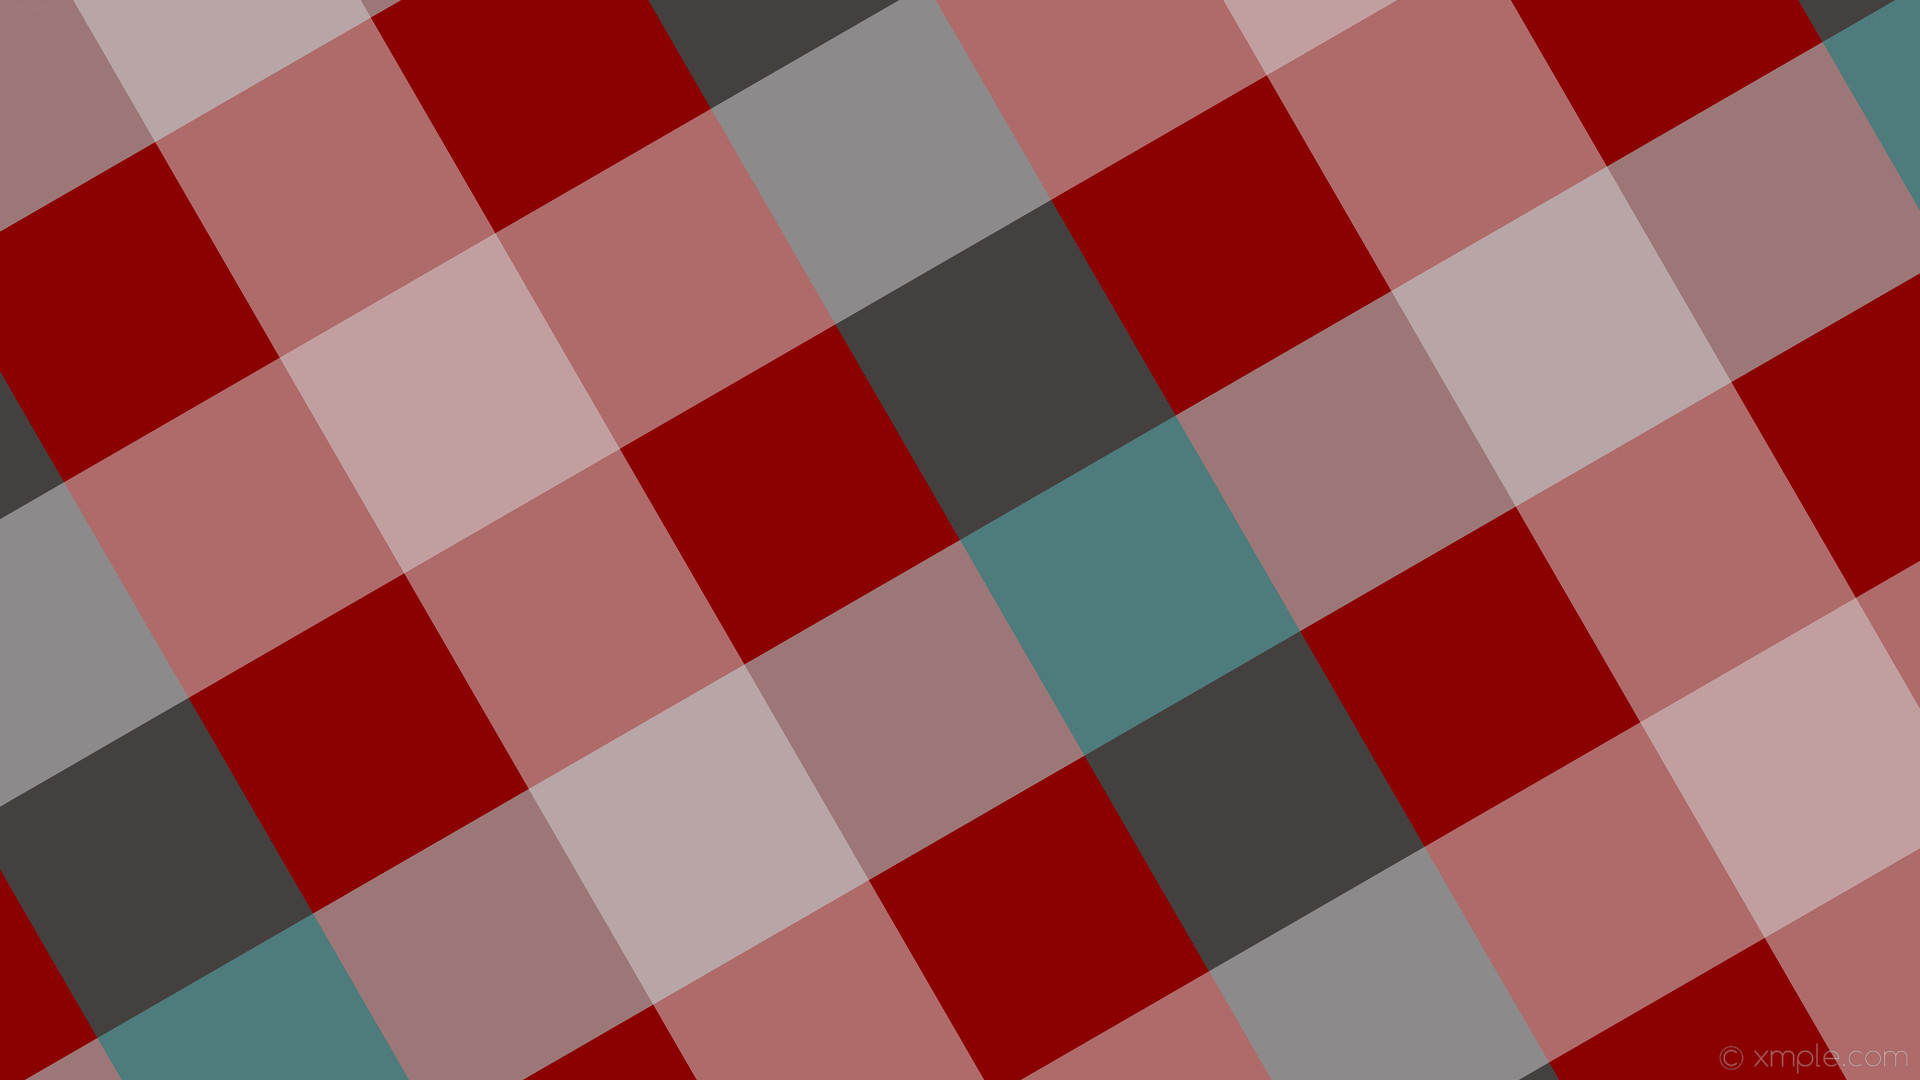 wallpaper blue red striped grey gingham quad green dark red pale turquoise  teal light gray #